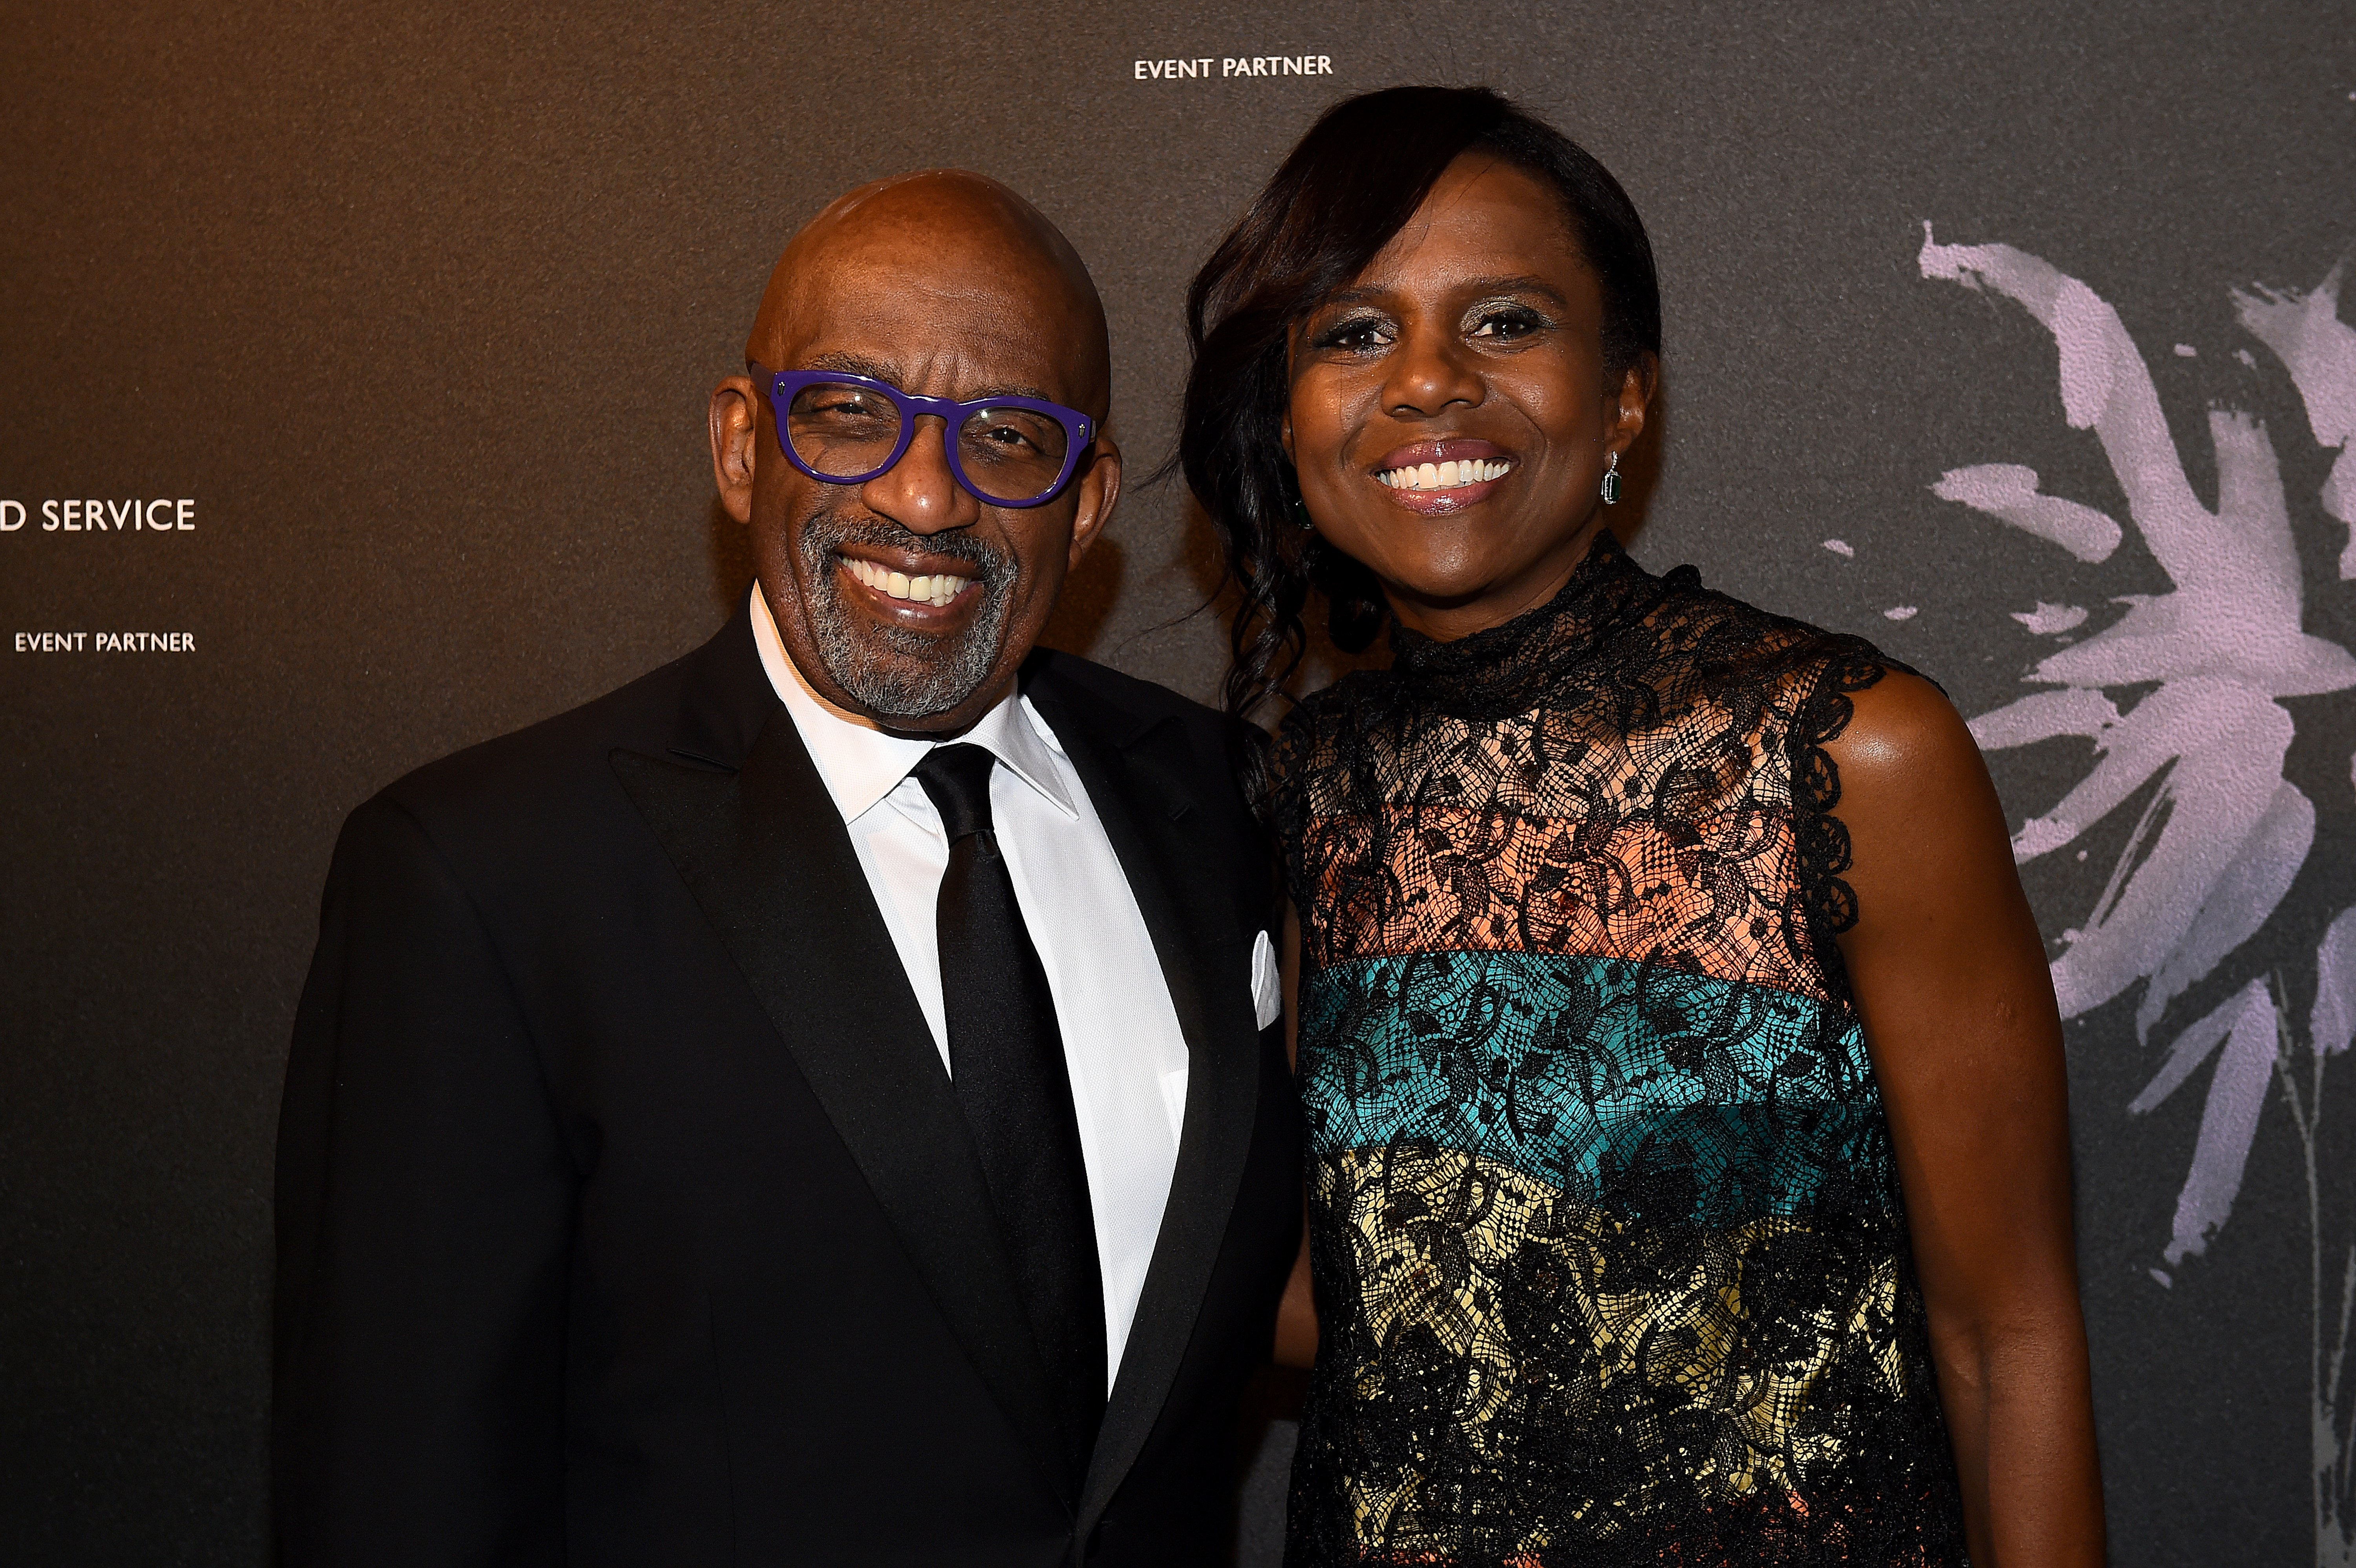 Al Roker and Deborah Roberts at the Fourth Annual Berggruen Prize Gala in New York City on December 16, 2019 | Source: Getty Images